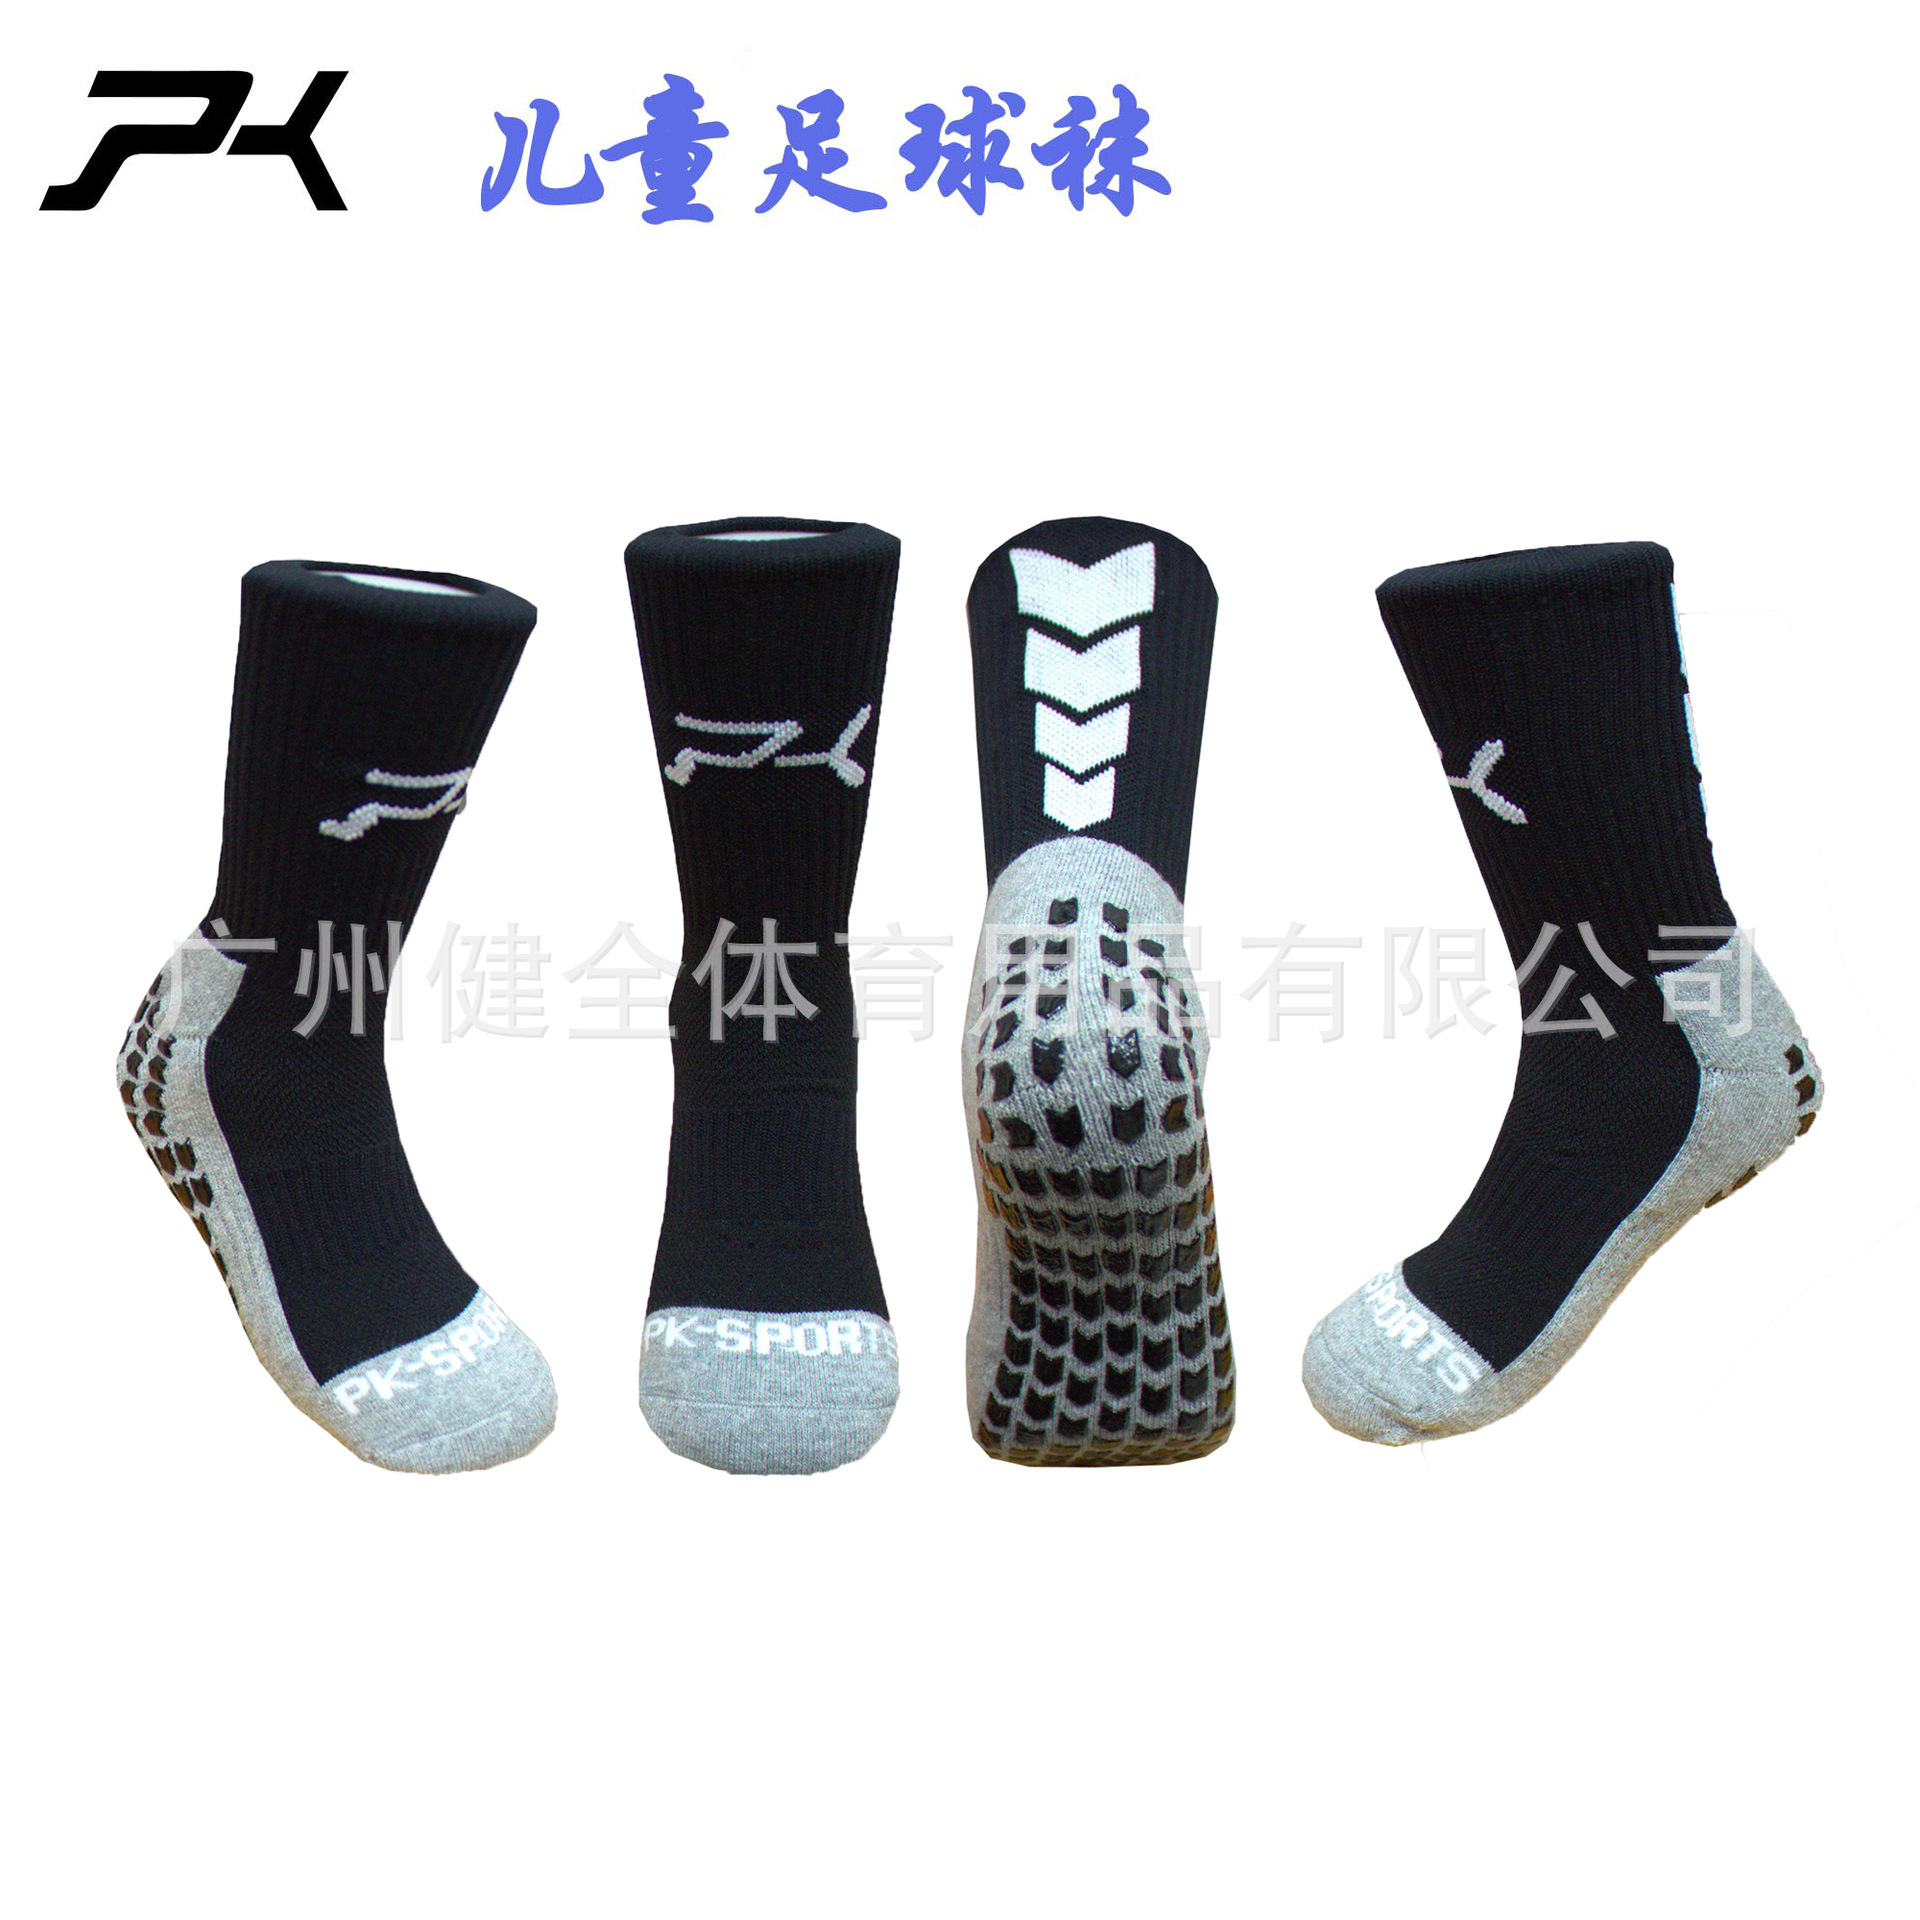 Unisex Kids Nylon Material Arrows Pattern Anti Slip Football Socks Professional Childrens Ice Skates Socks Soccer Socks